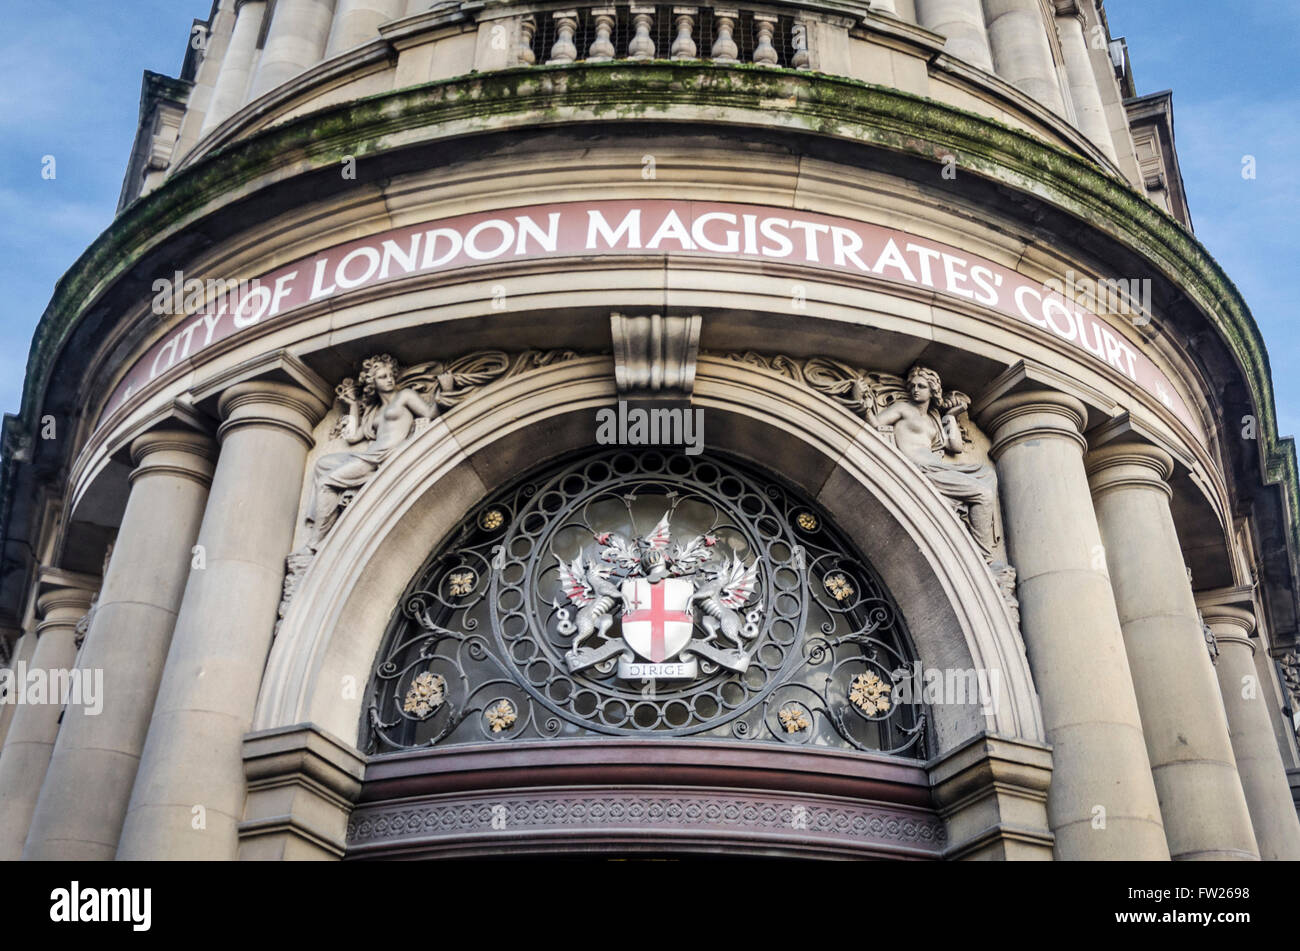 City of London Magistrates' Court, London, UK - Stock Image